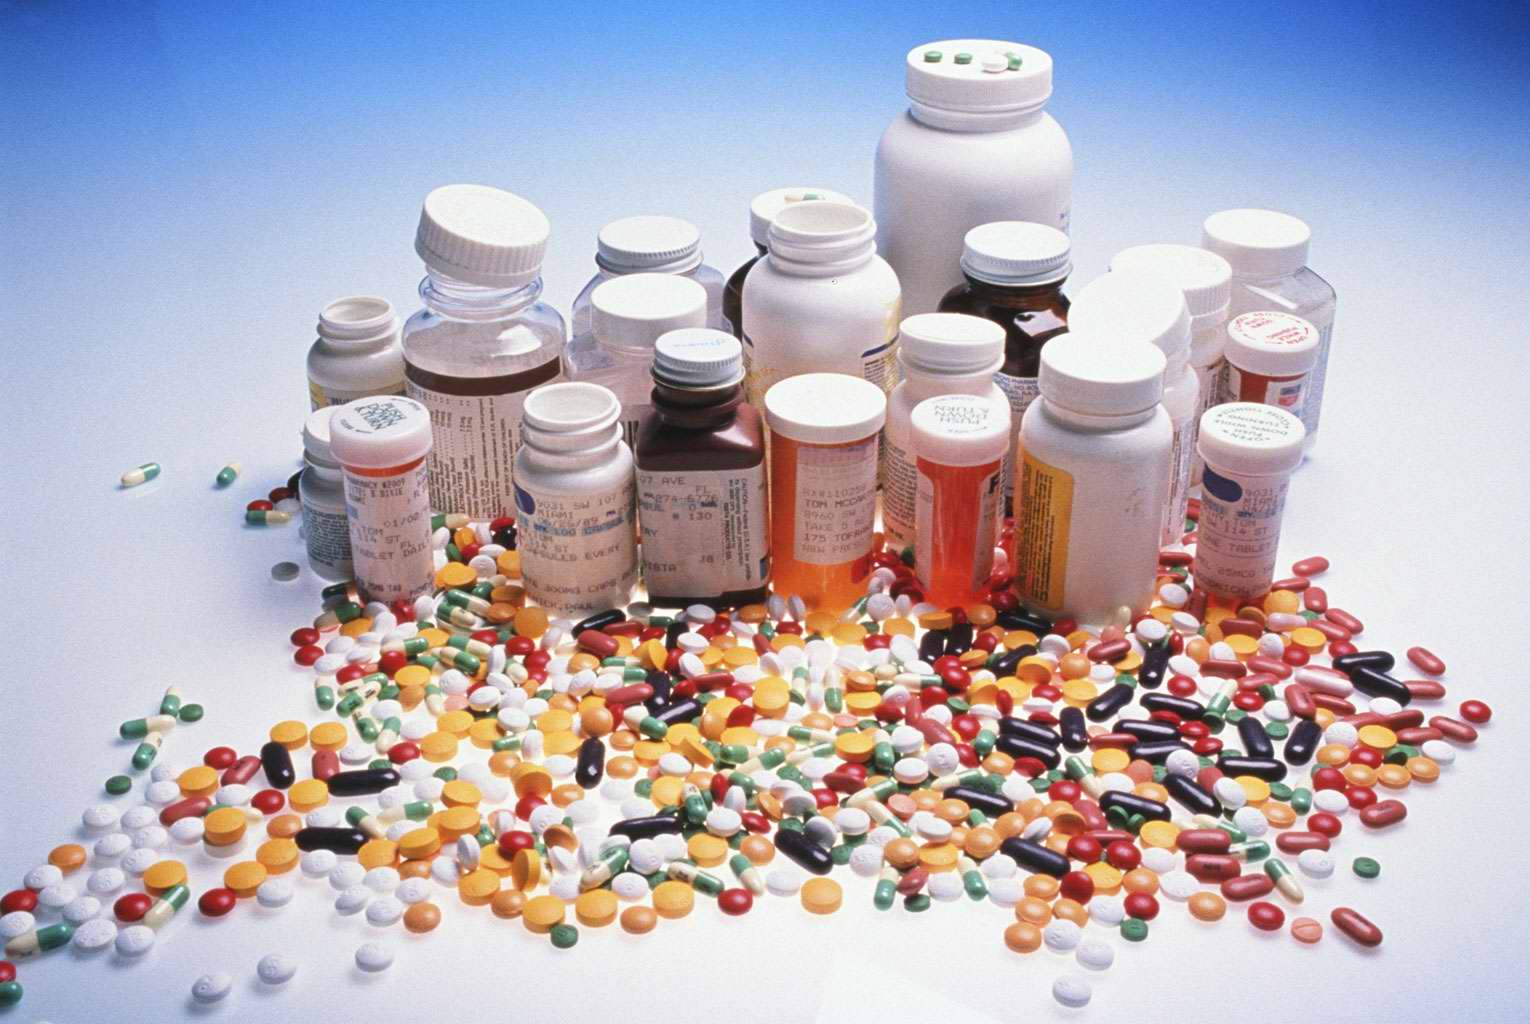 Proper Use of Supplements and Medication